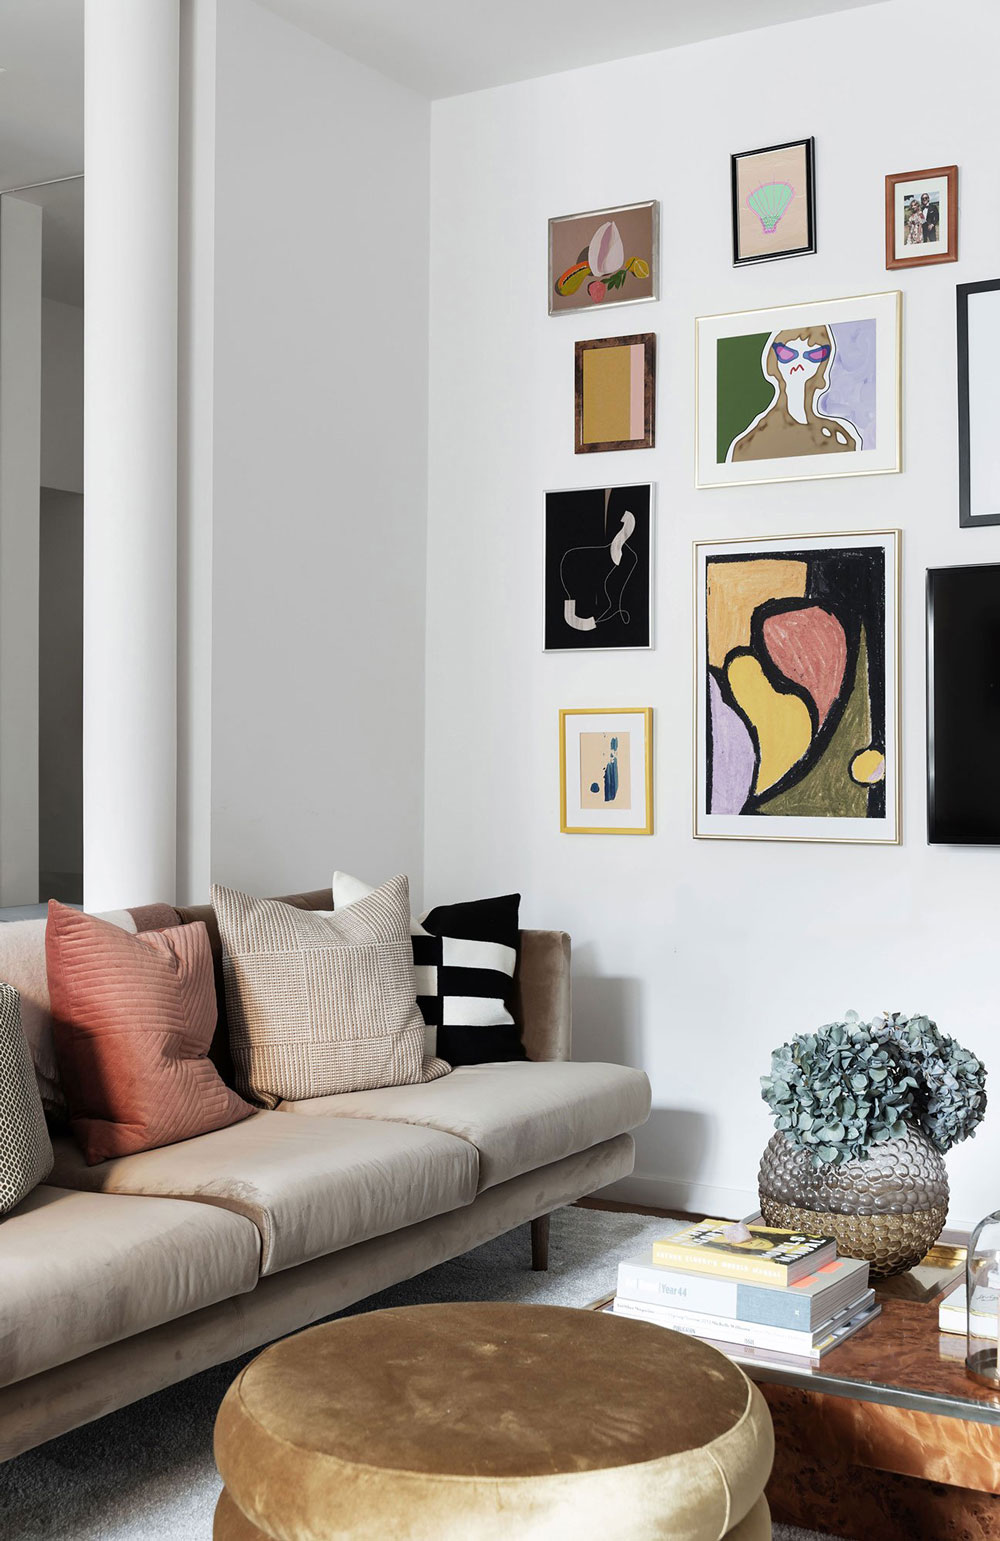 The Nordroom - Art-Filled Home of Henrietta Fromholtz